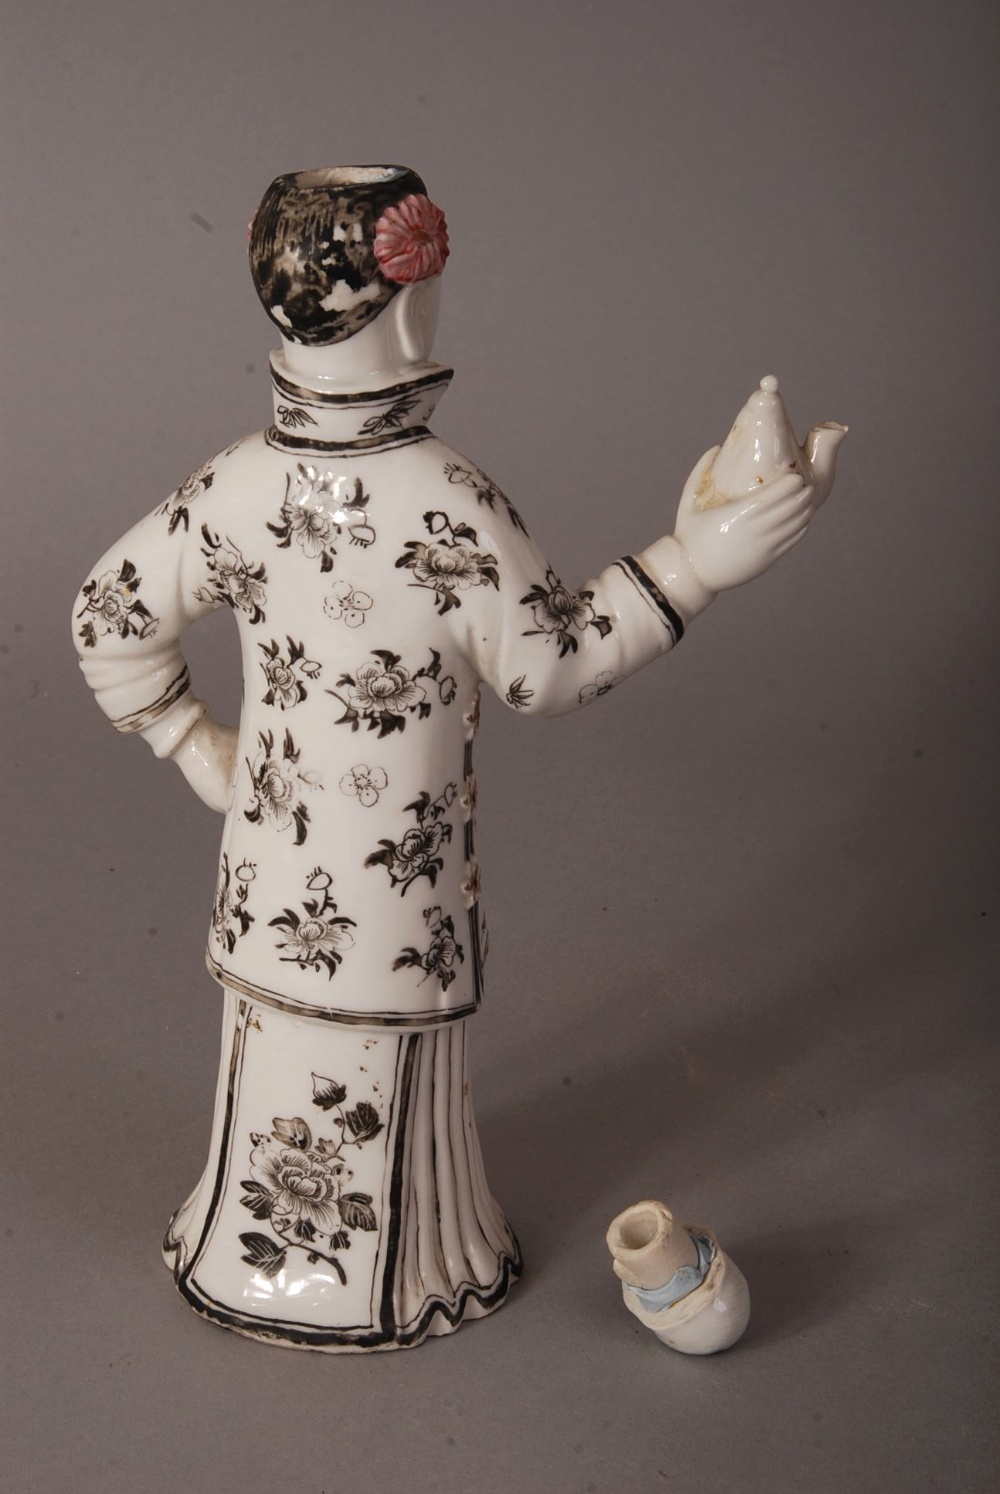 Lot 42 - C19th/20th Chinese white glazed lady-form teapot and cover, painted in black and red with floral